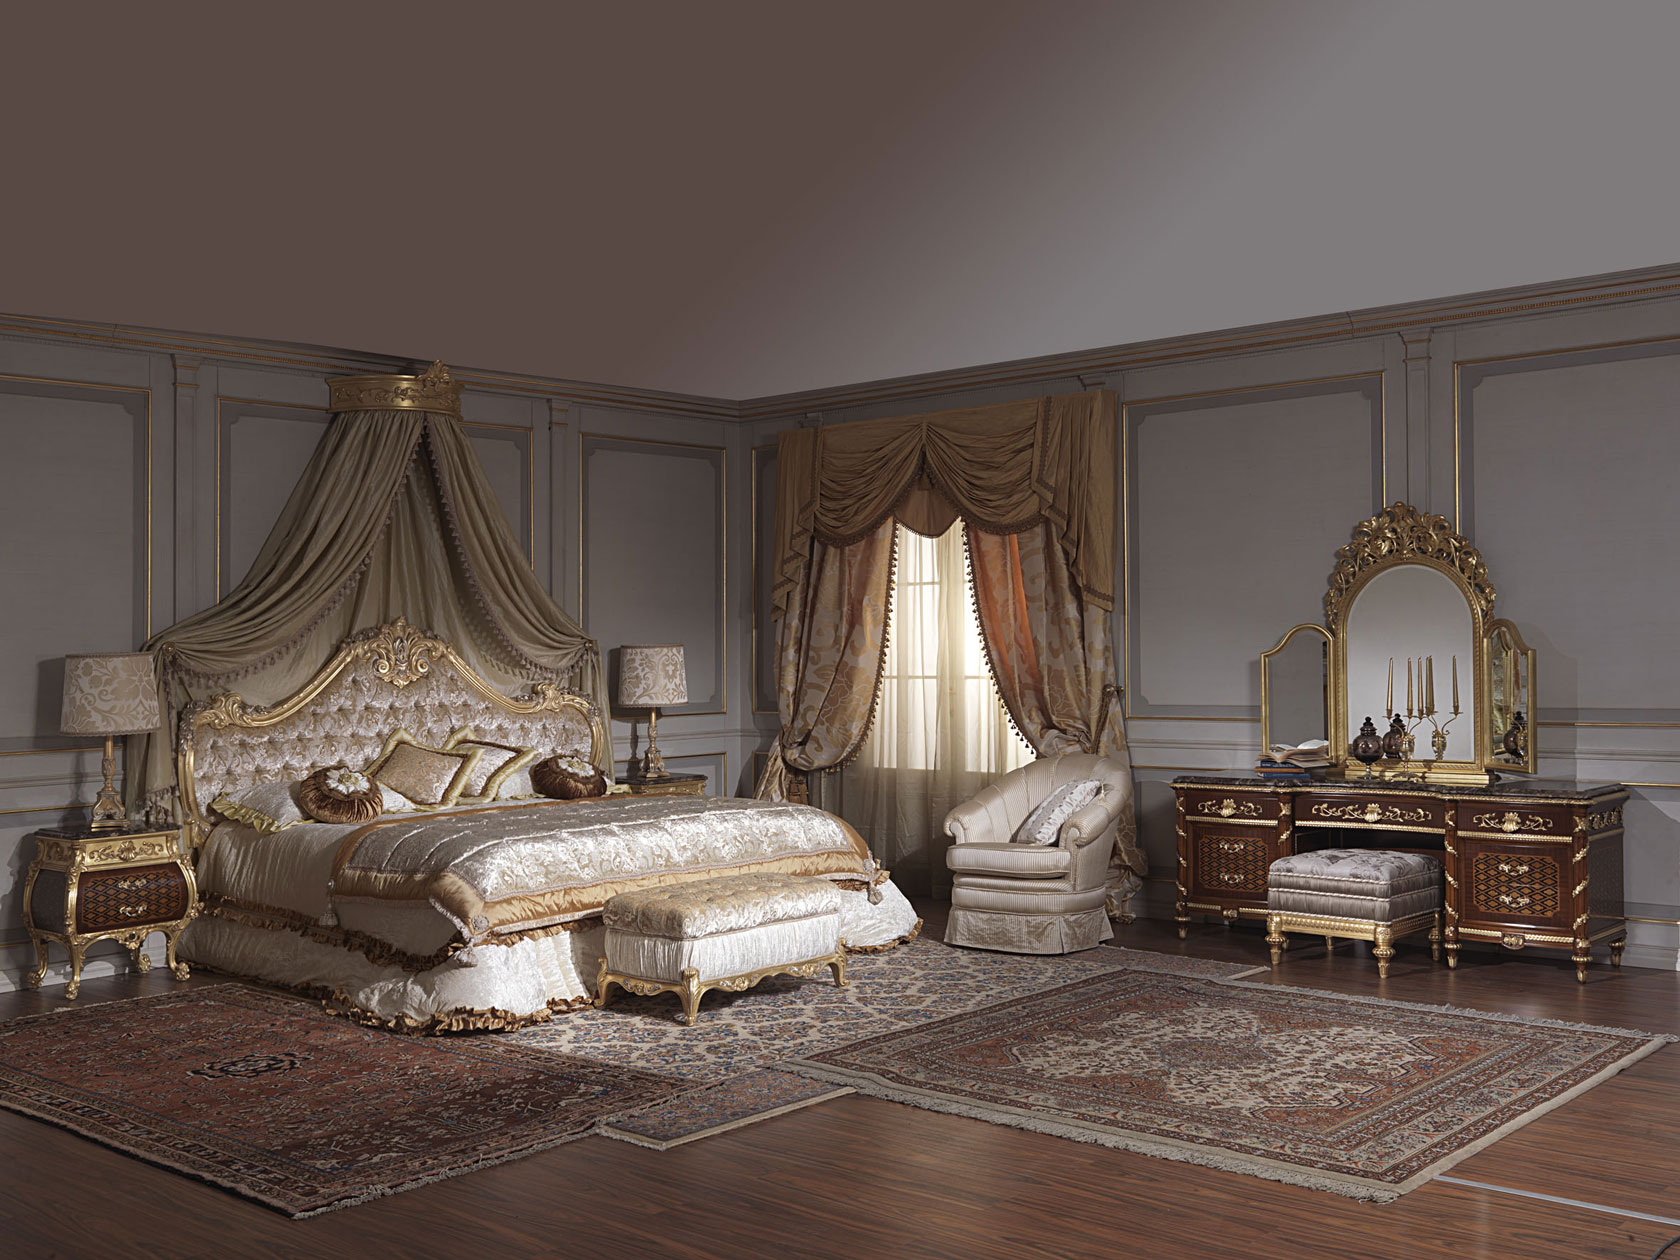 Classic Bedroom Italian 18th Century And Louis Xv